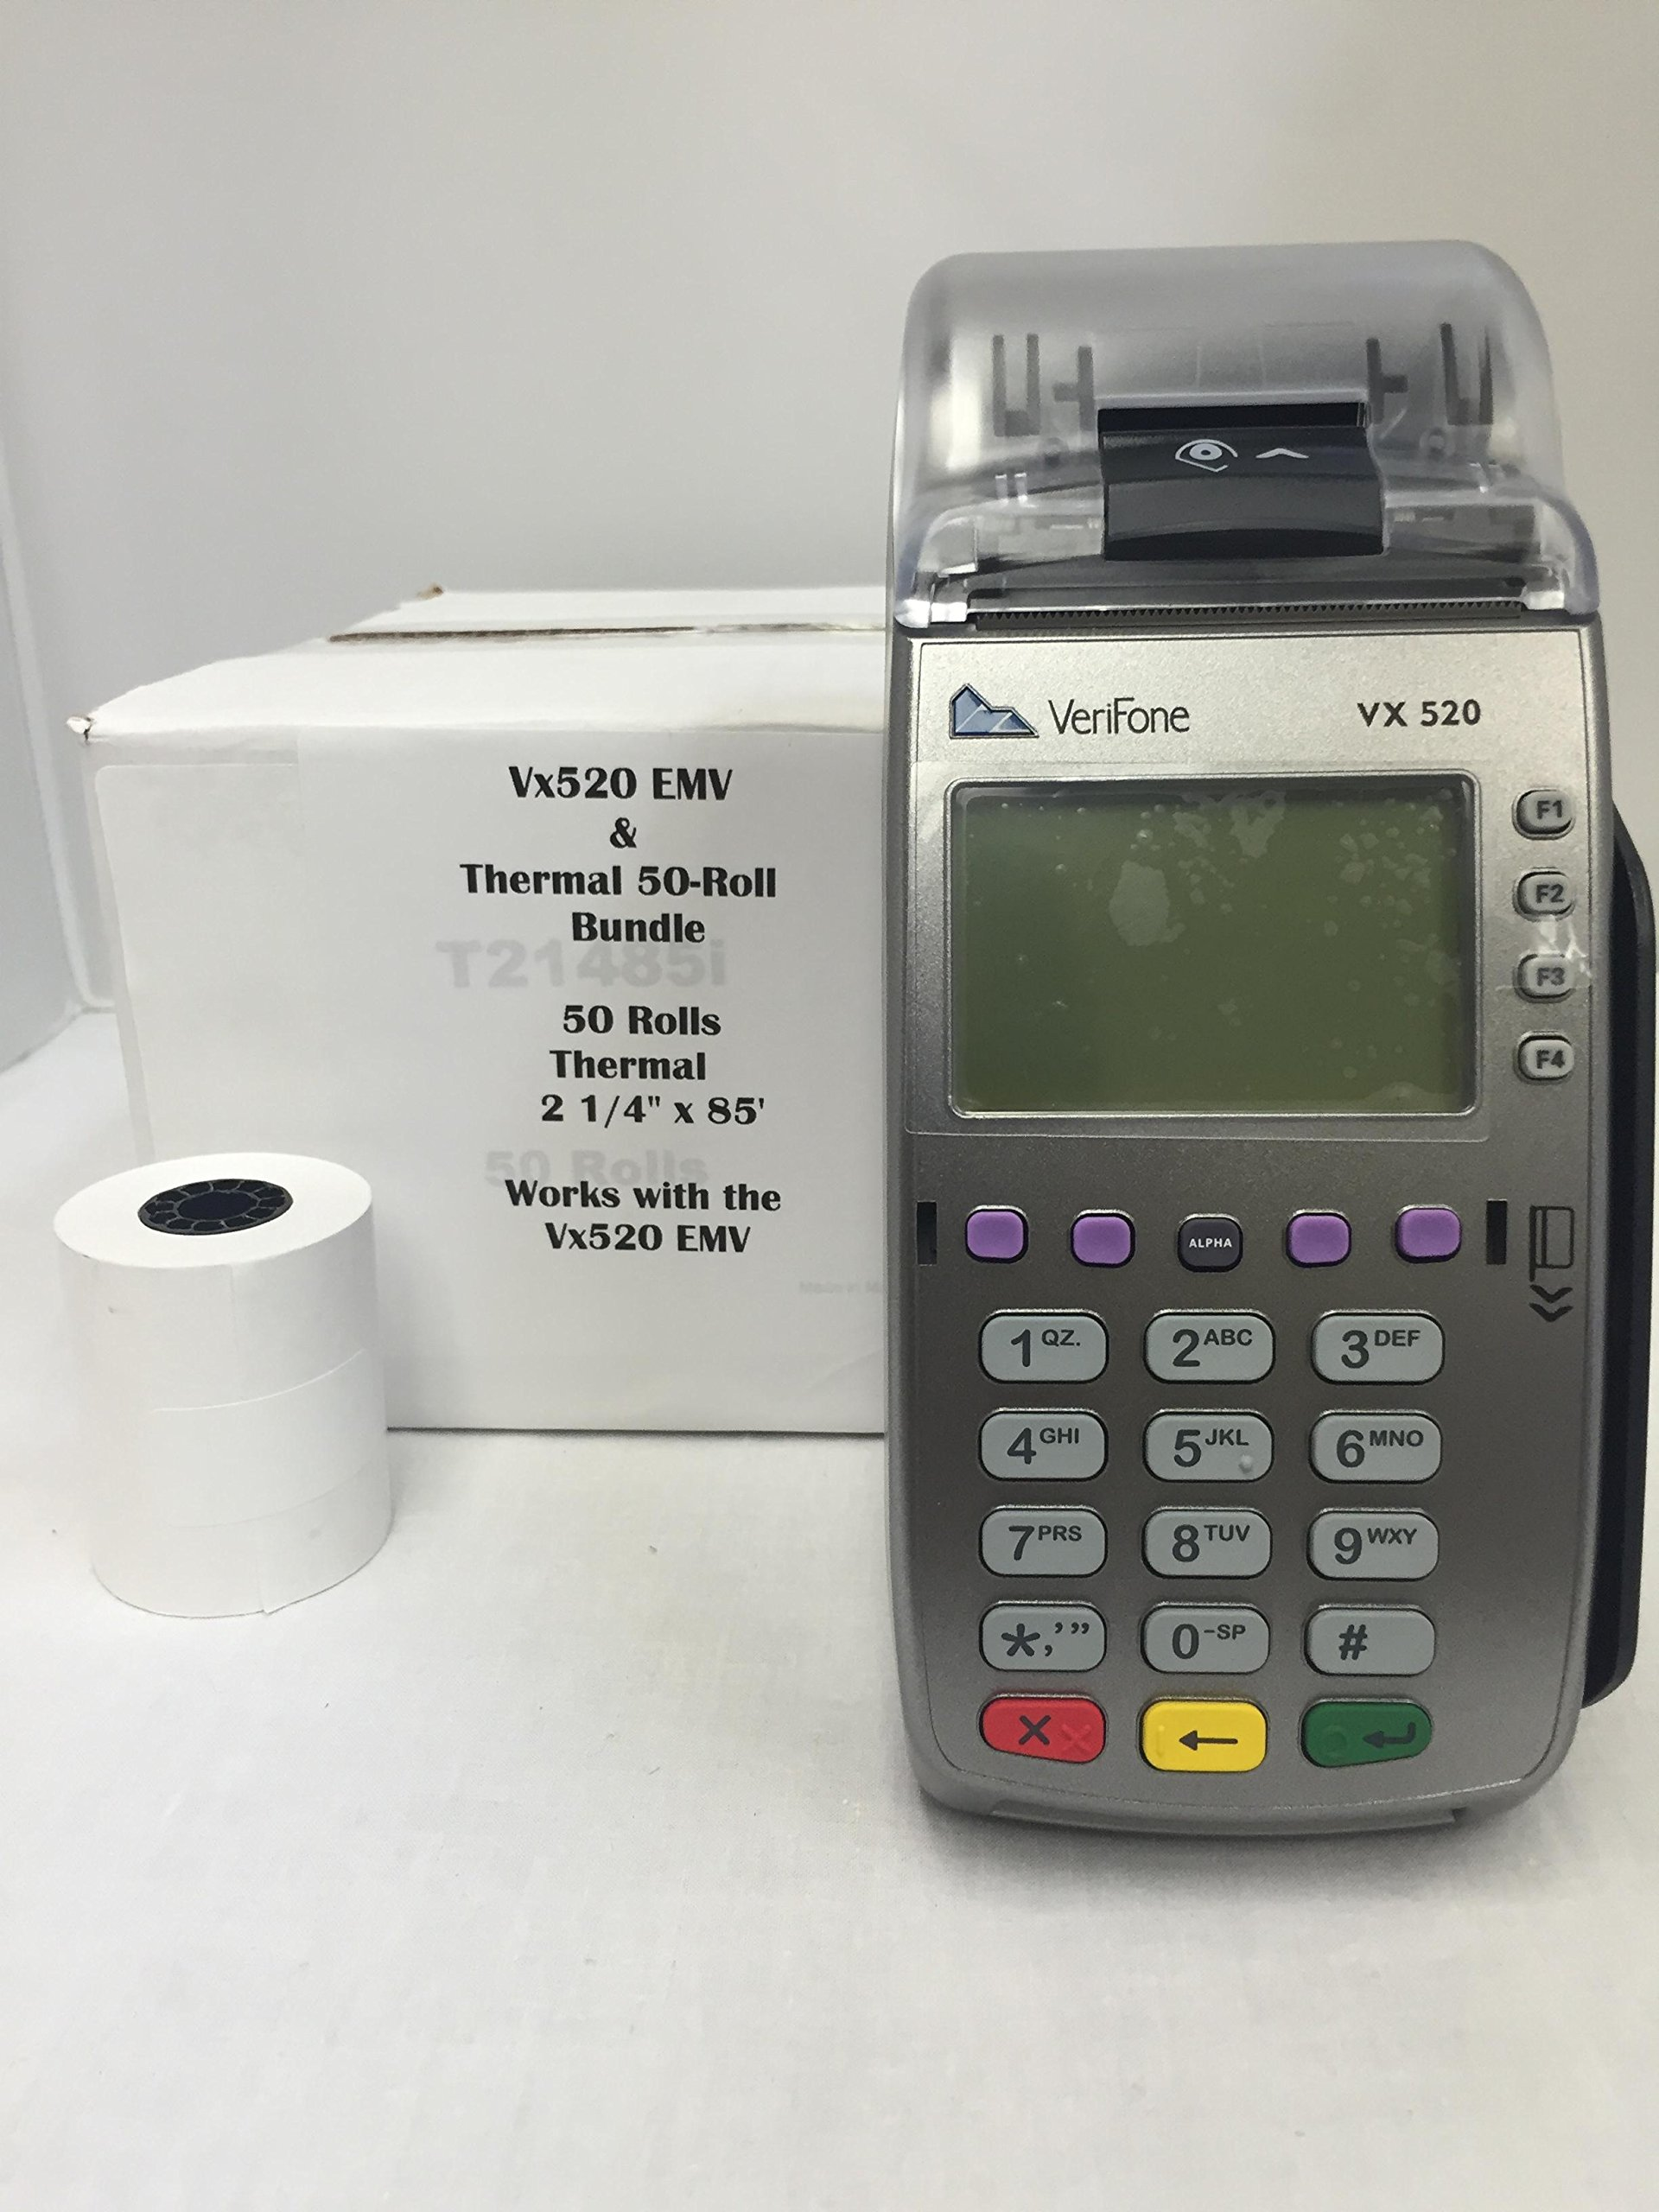 Verifone Vx520 EMV Credit Card Terminal and 2 1/4''x 85' Thermal Paper (50 rolls)